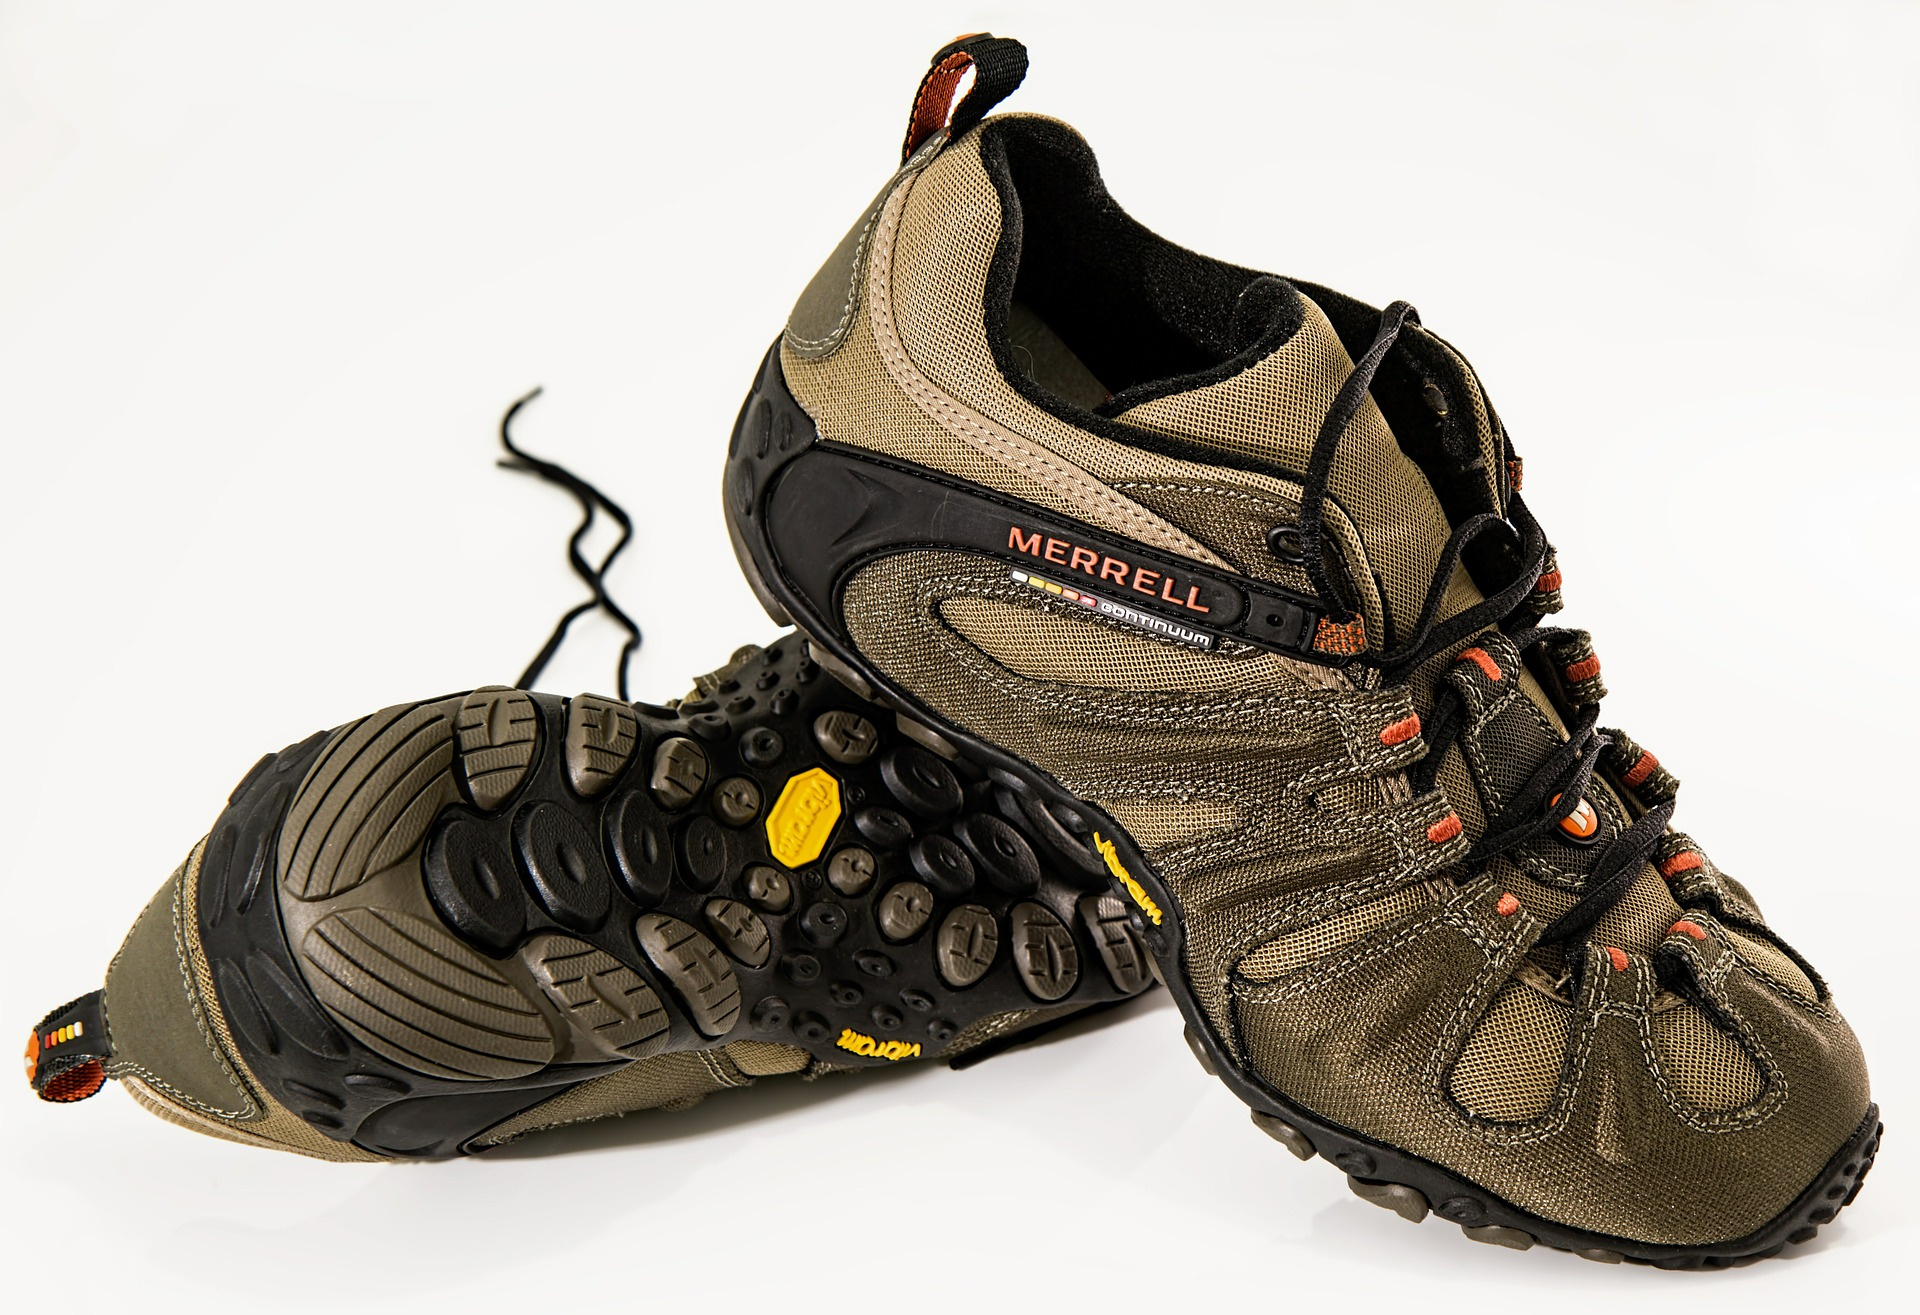 Right footwear according to the terrain, shoes, hiking, trekking, the northface, patagonia, la sportiva, hushpuppies, merrell, boots, mountains, trekking, hitchhiking, feet